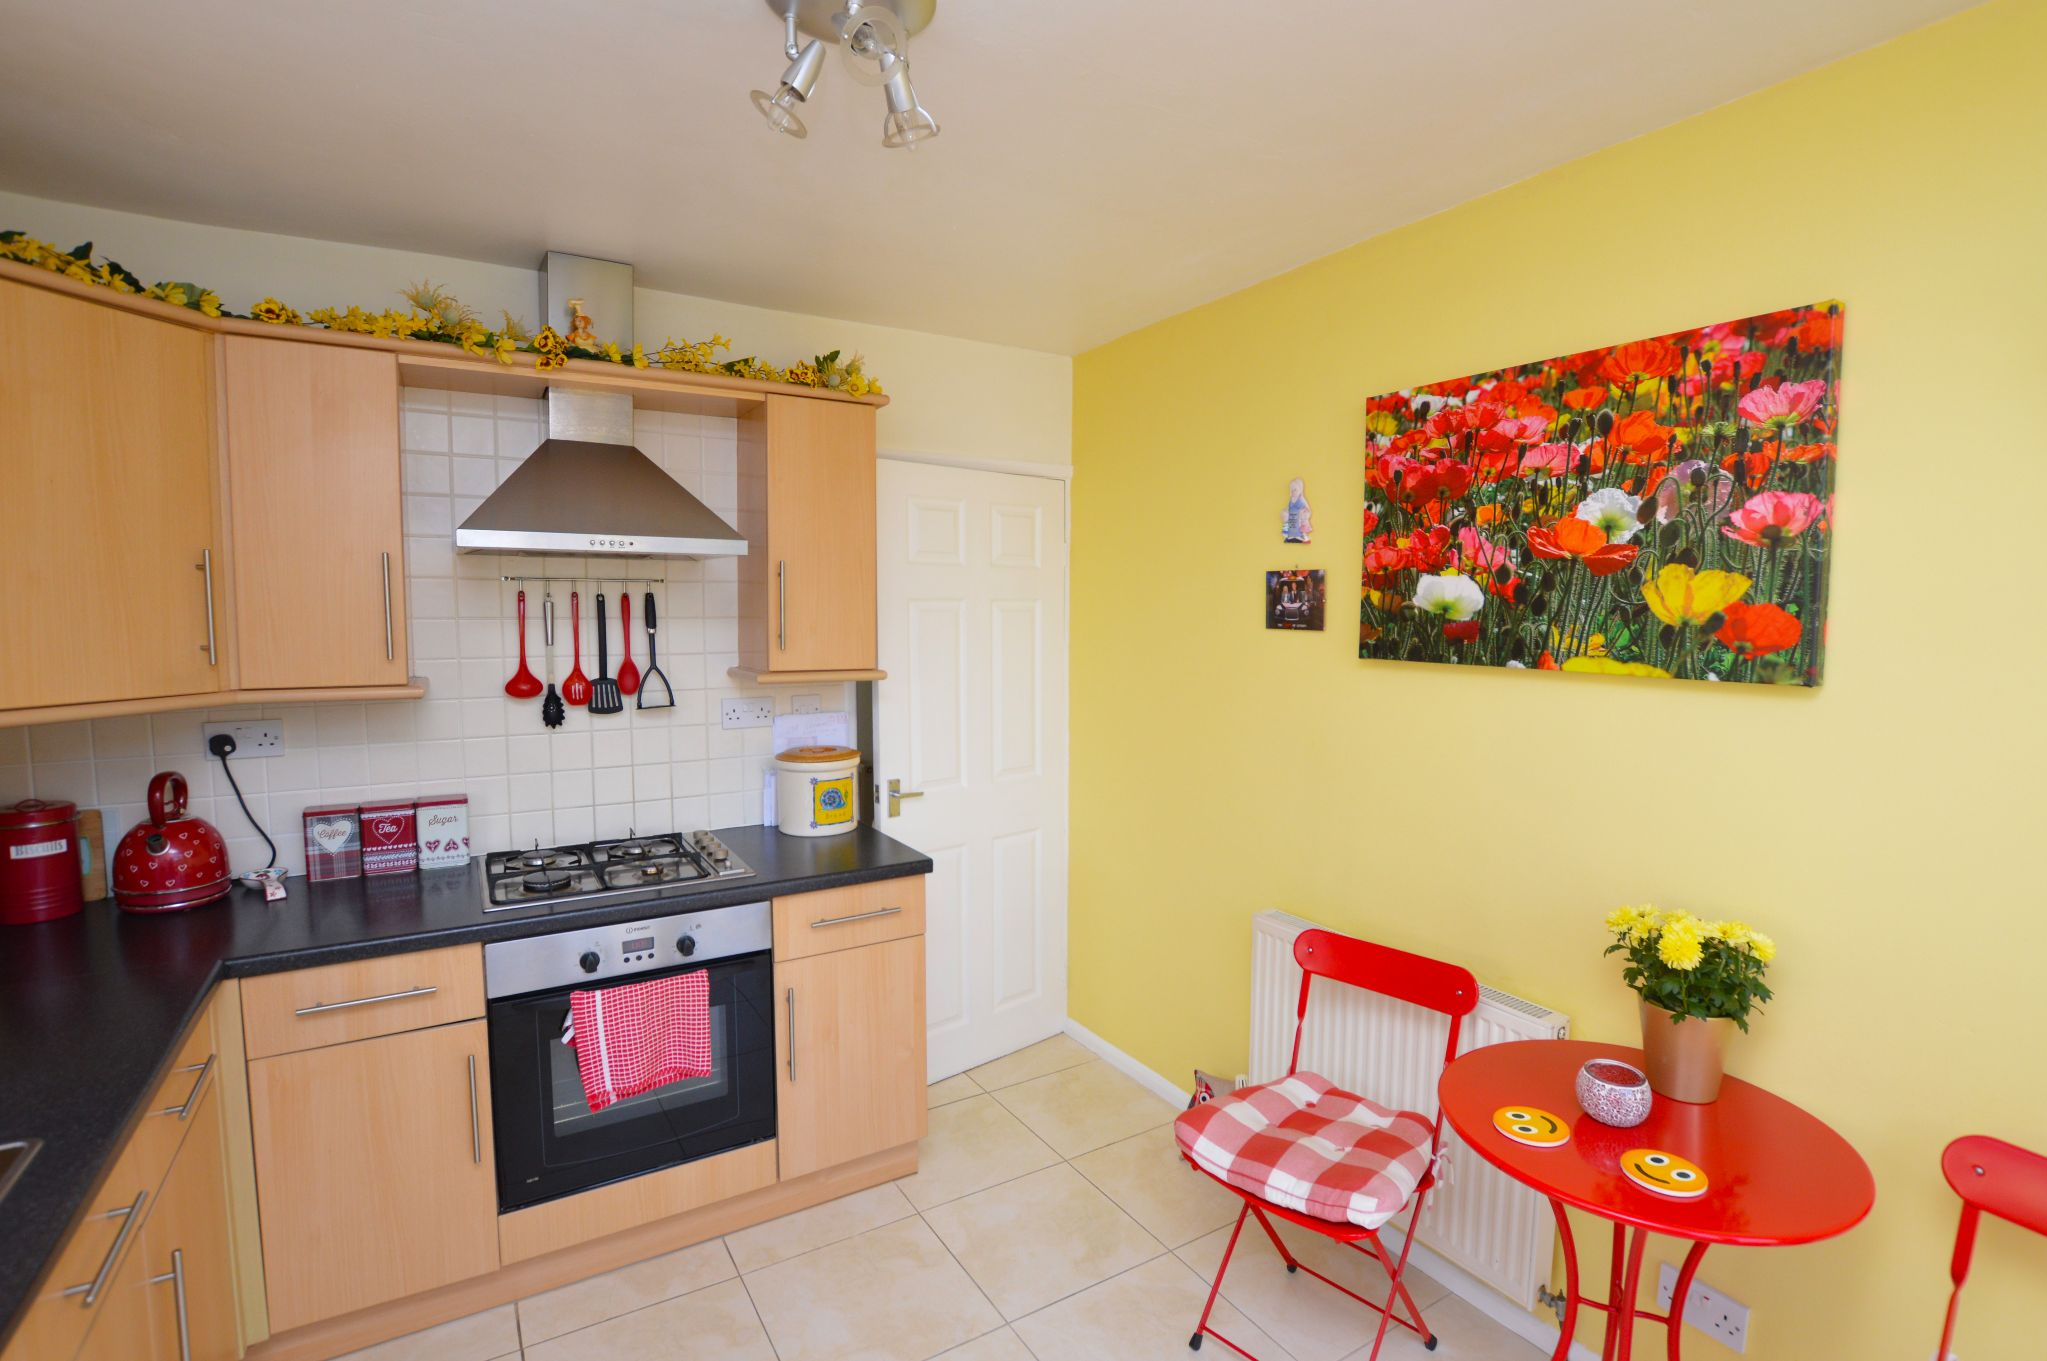 2 bedroom detached bungalow For Sale in Abergele - Kitchen View 3